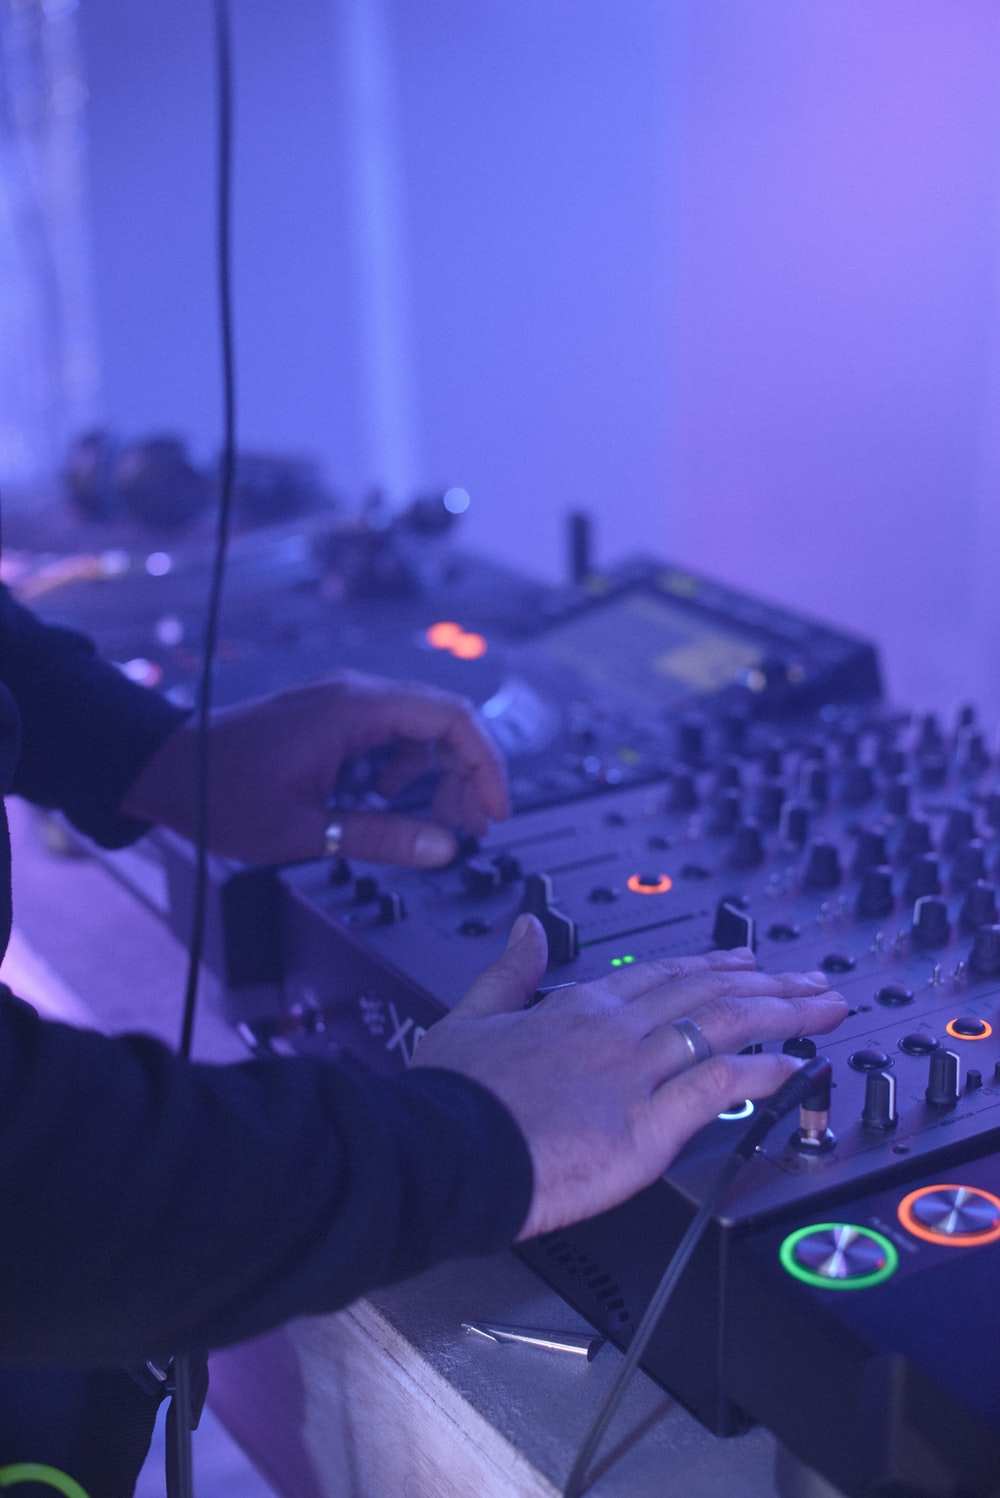 unknown person using DJ turn table